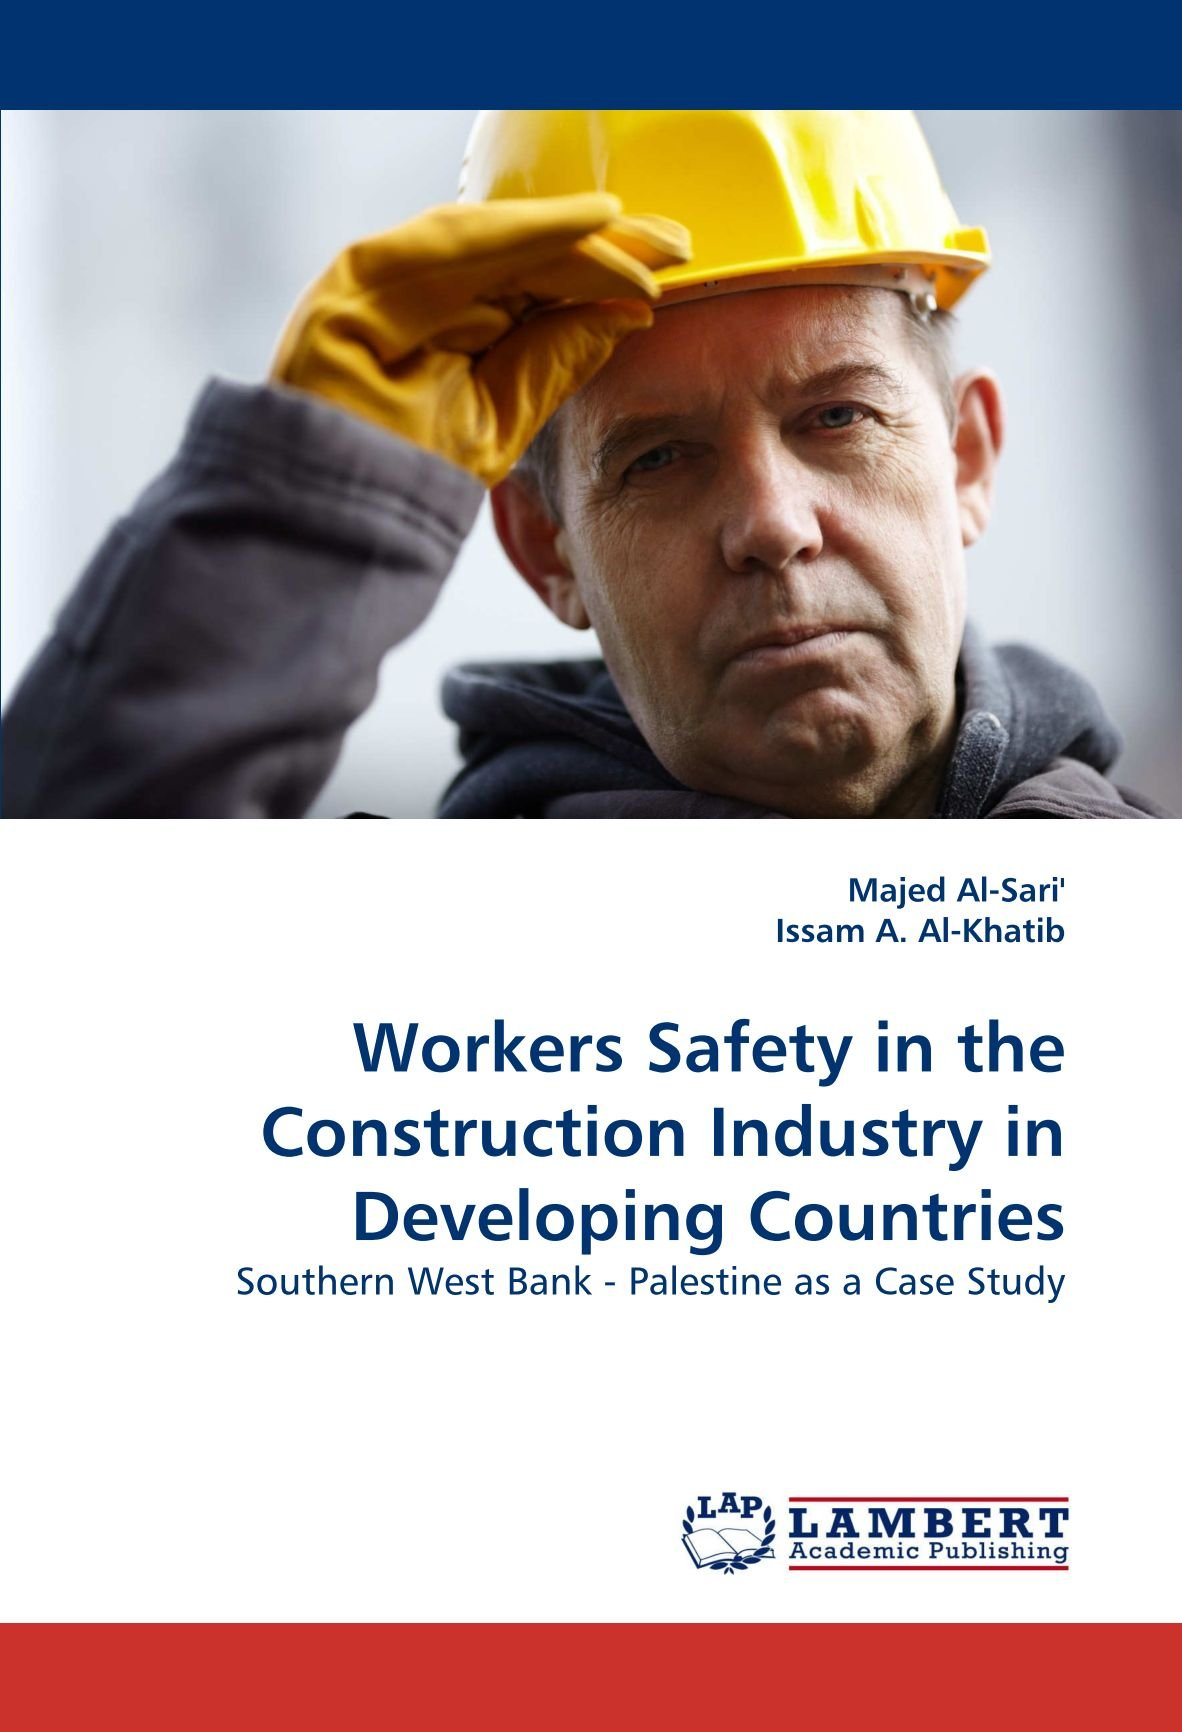 Workers Safety in the Construction Industry in Developing Countries: Southern West Bank - Palestine as a Case Study